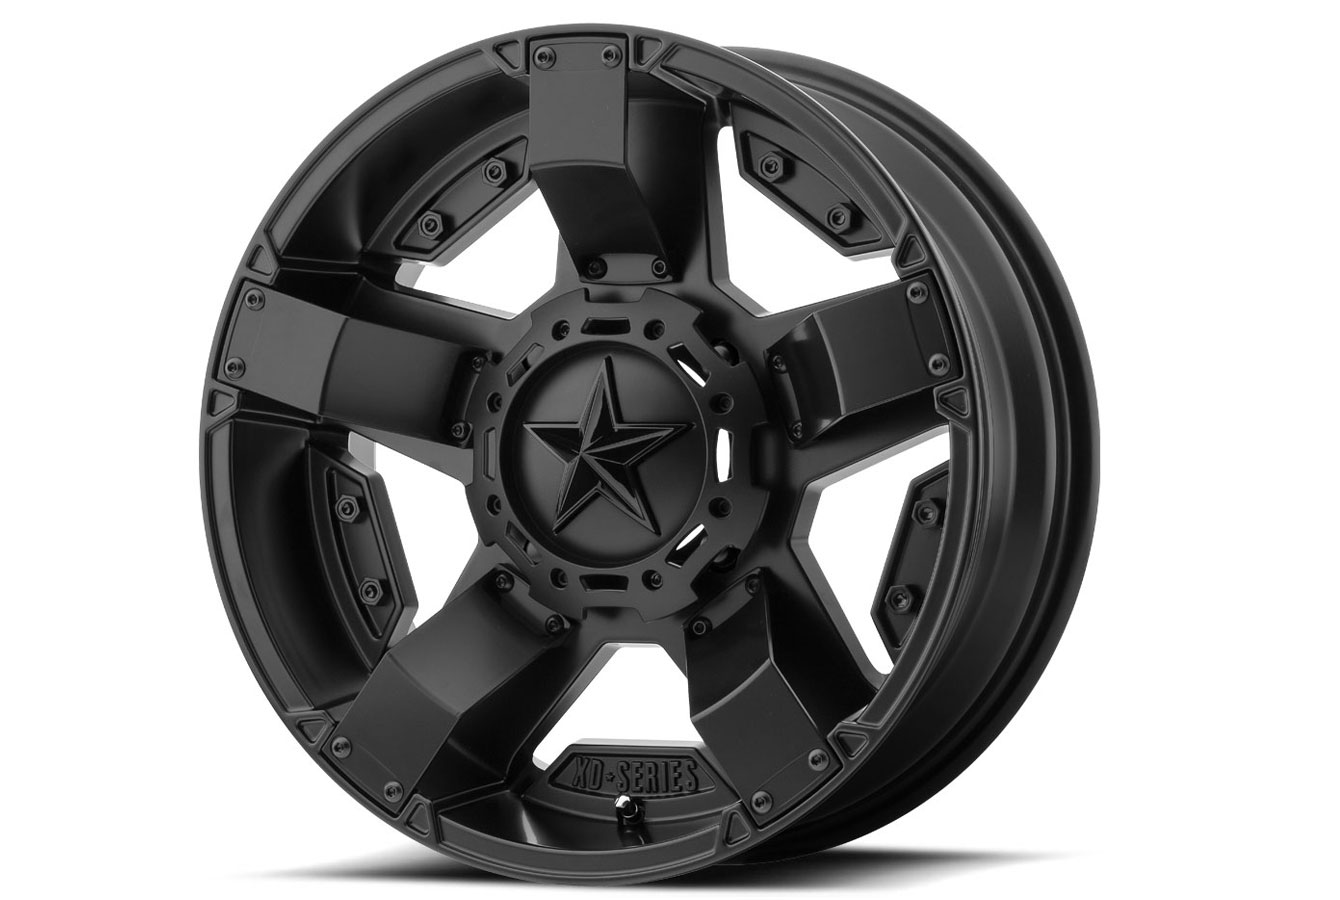 KMC 811 ROCKSTAR II WHEELS